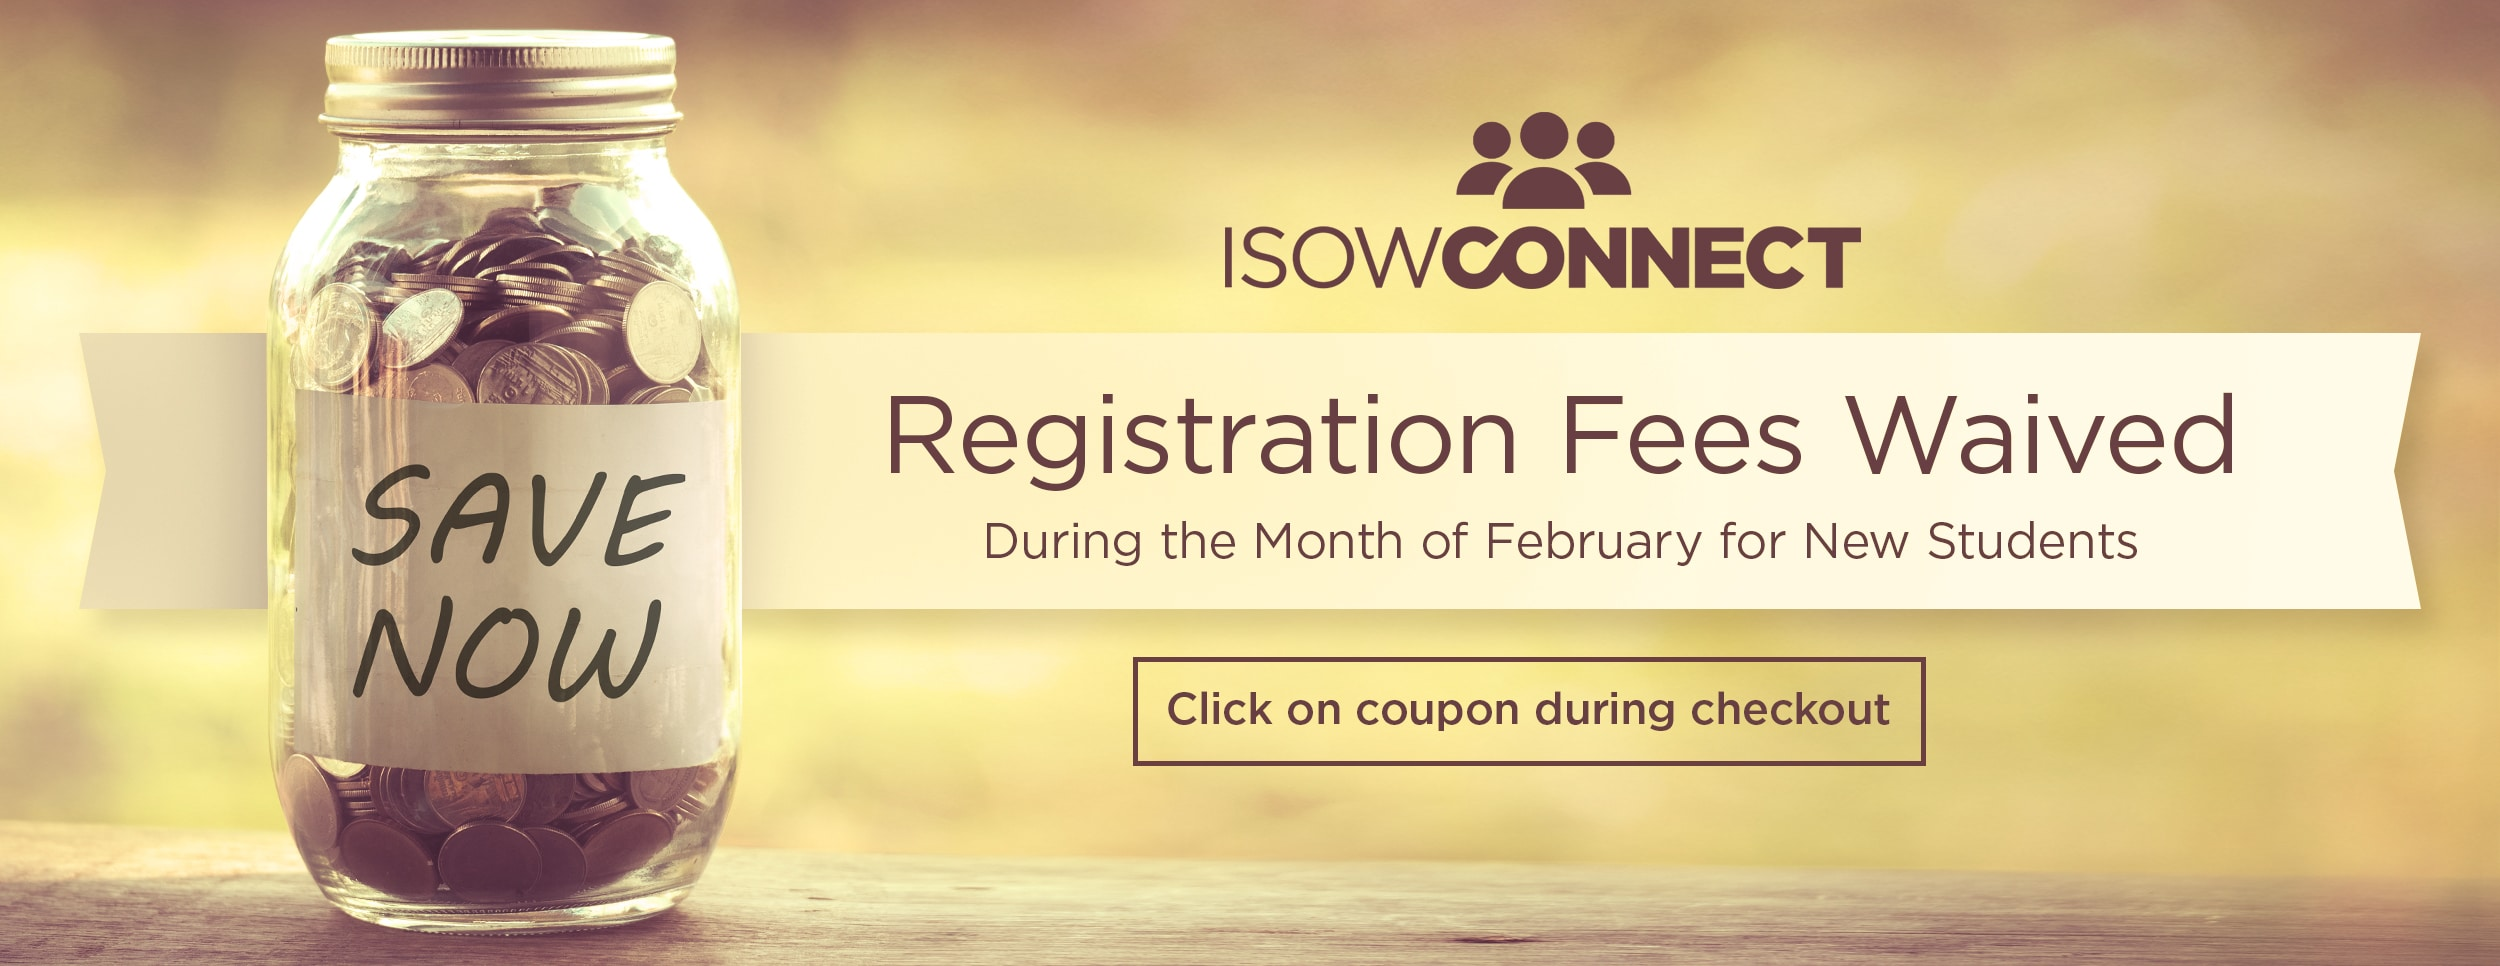 ISOW Connect Waived Registration Fees Sale – Website Banner